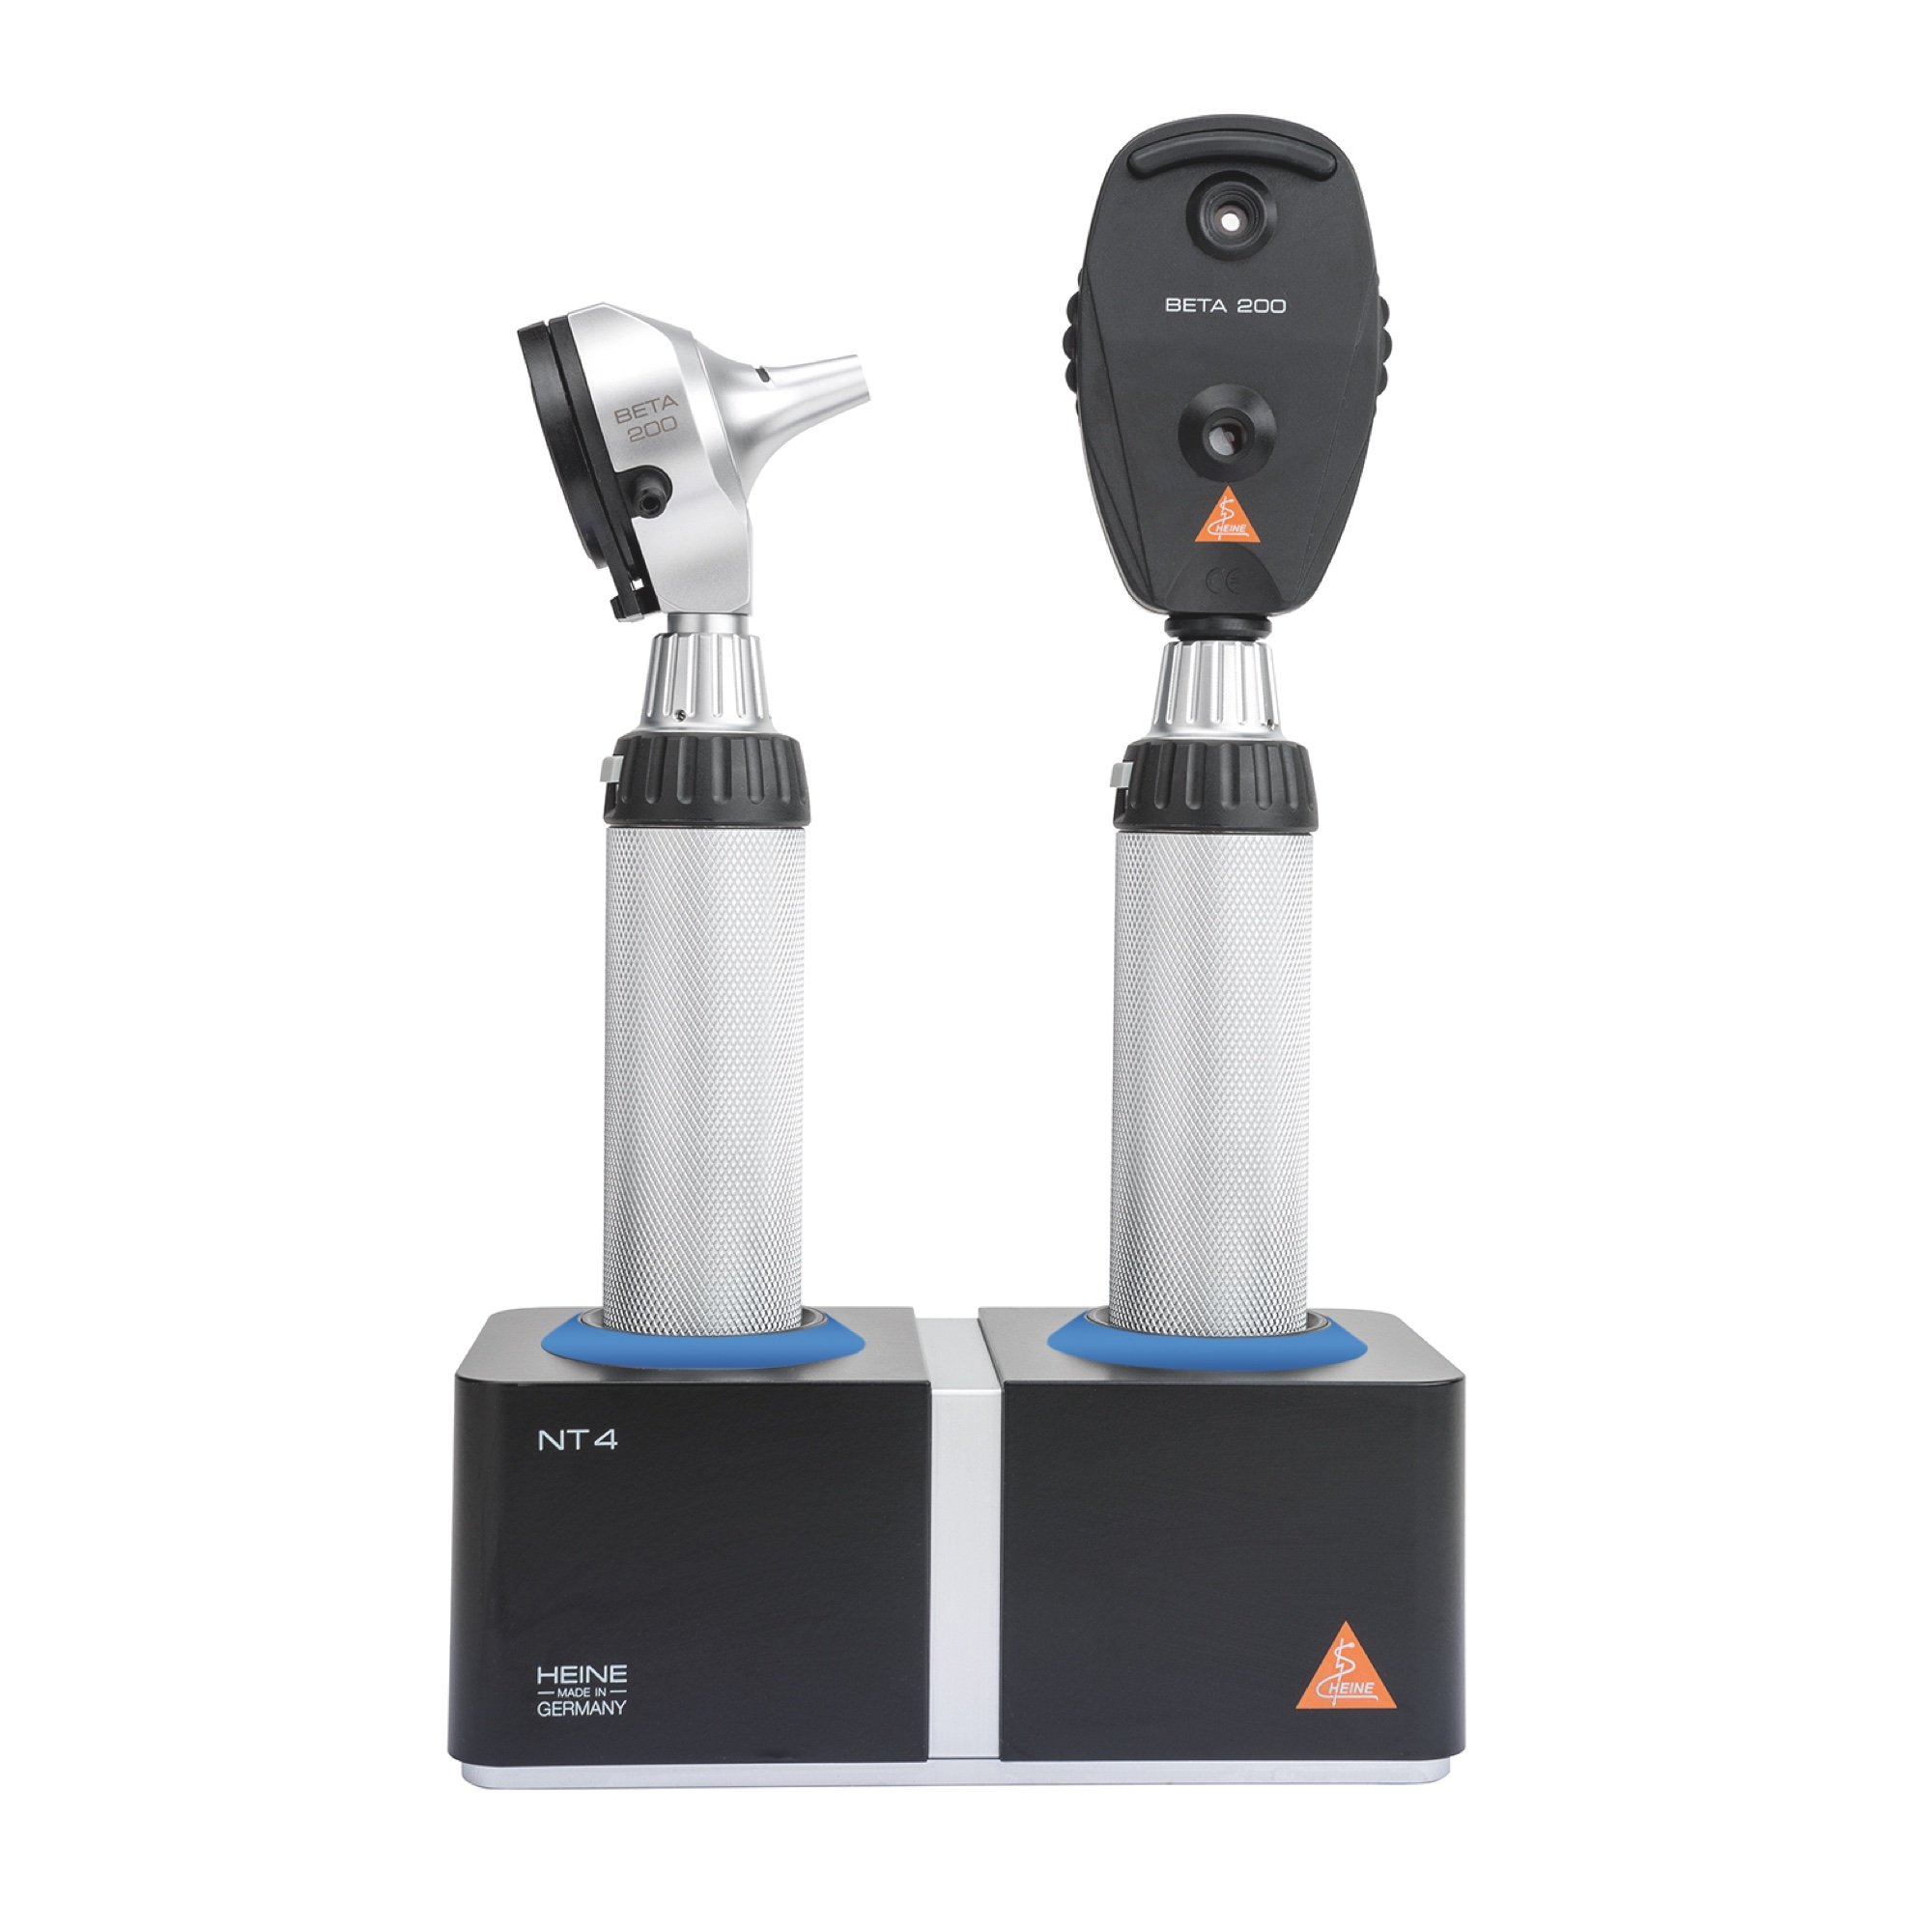 HEINE LED Diagnostic Desktop Kit: BETA 200 LED Otoscope & BETA 200 Ophthalmoscope (with NT4 Table Charger)